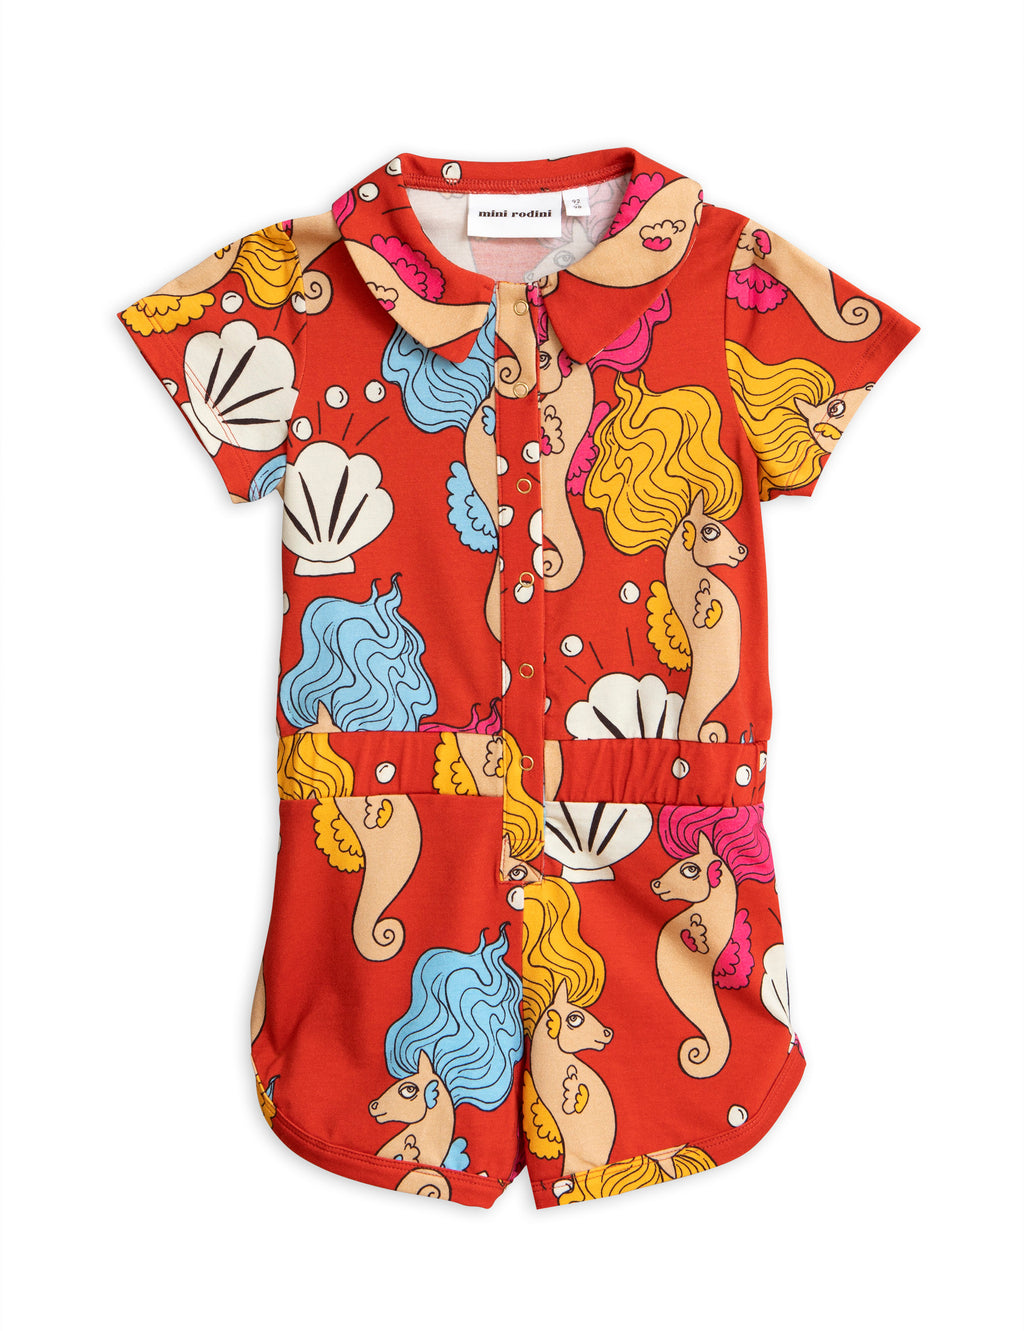 Mini Rodini Seahorse Summersuit - Red